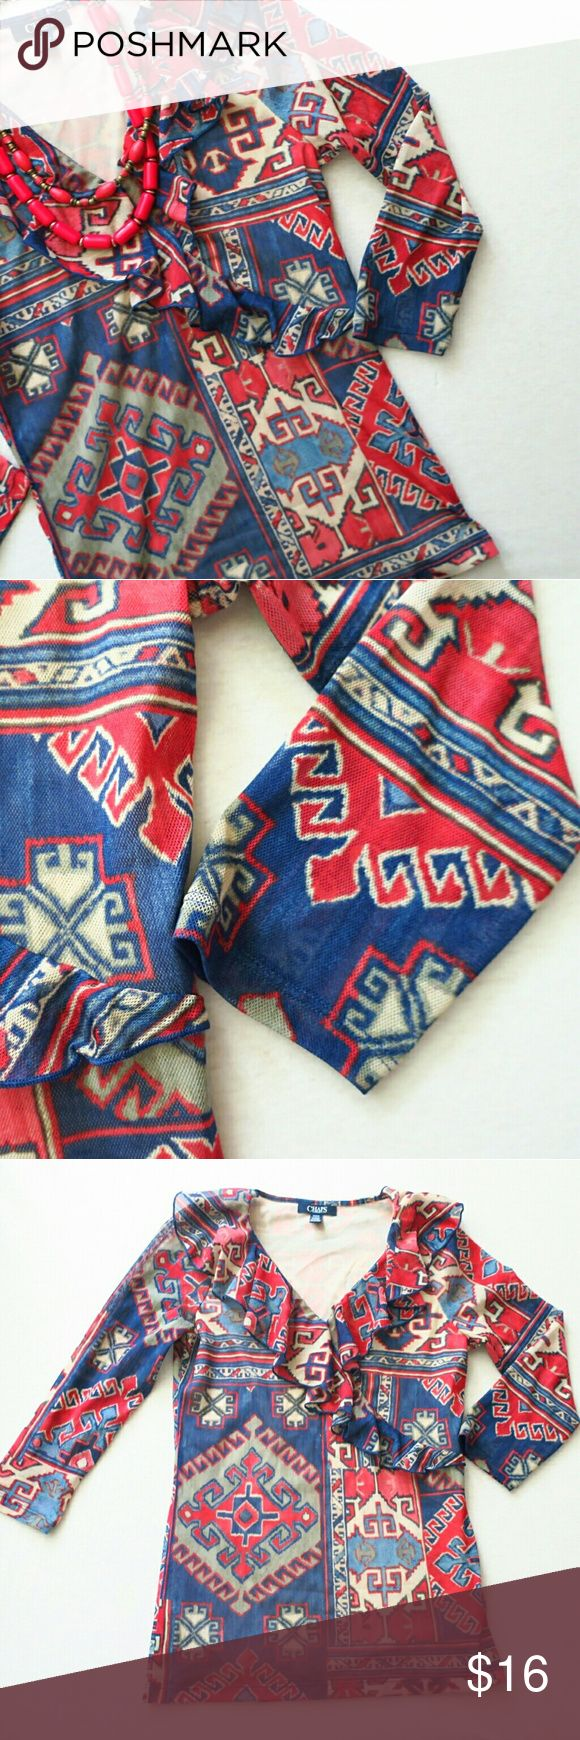 Chaps Preforated 3/4 sleeve Aztec Blouse Preforated 100% Polyester  Aztec Print Light tan red and blue Vneck with ruffle   Lined  NWOT   TOP RATED SELLER  FAST SHIPPING  Create a bundle of items and get a Private discounted price offer from me Chaps Tops Blouses